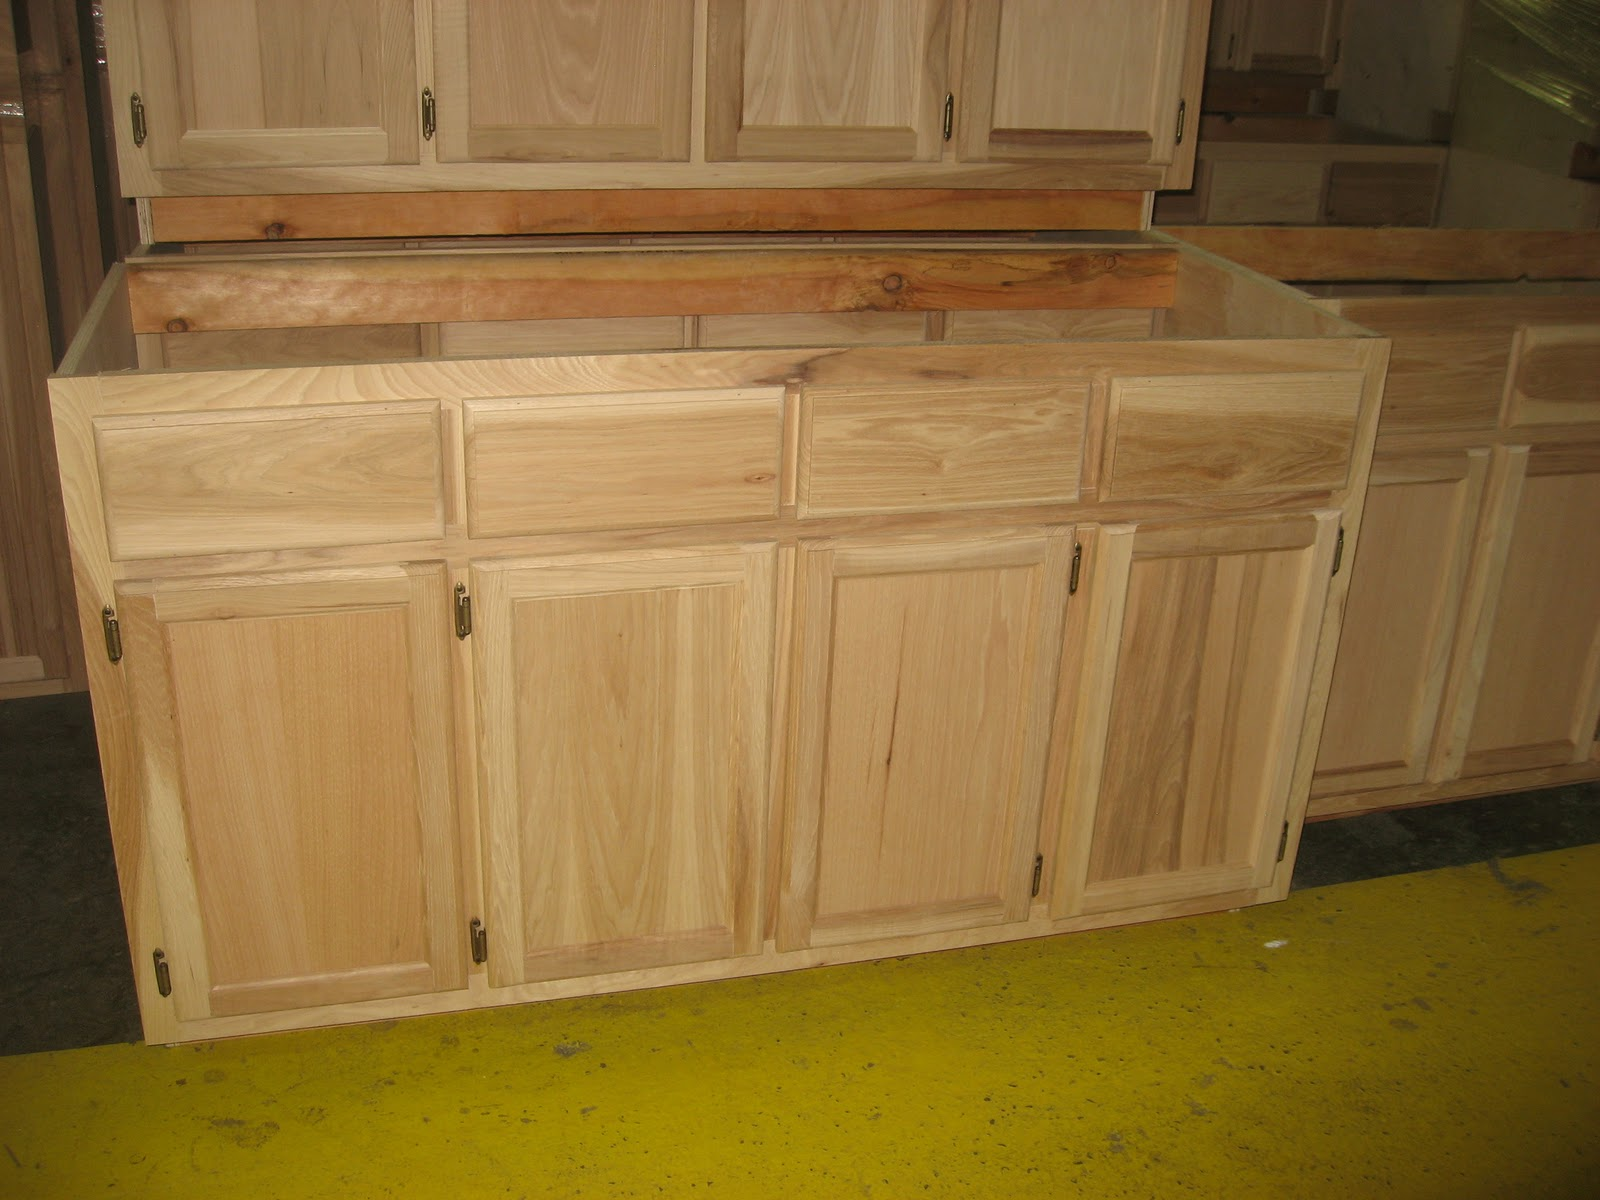 discount replacement kitchen cabinet doors mason jar lights blue ridge surplus: hickory unfinished cabinets